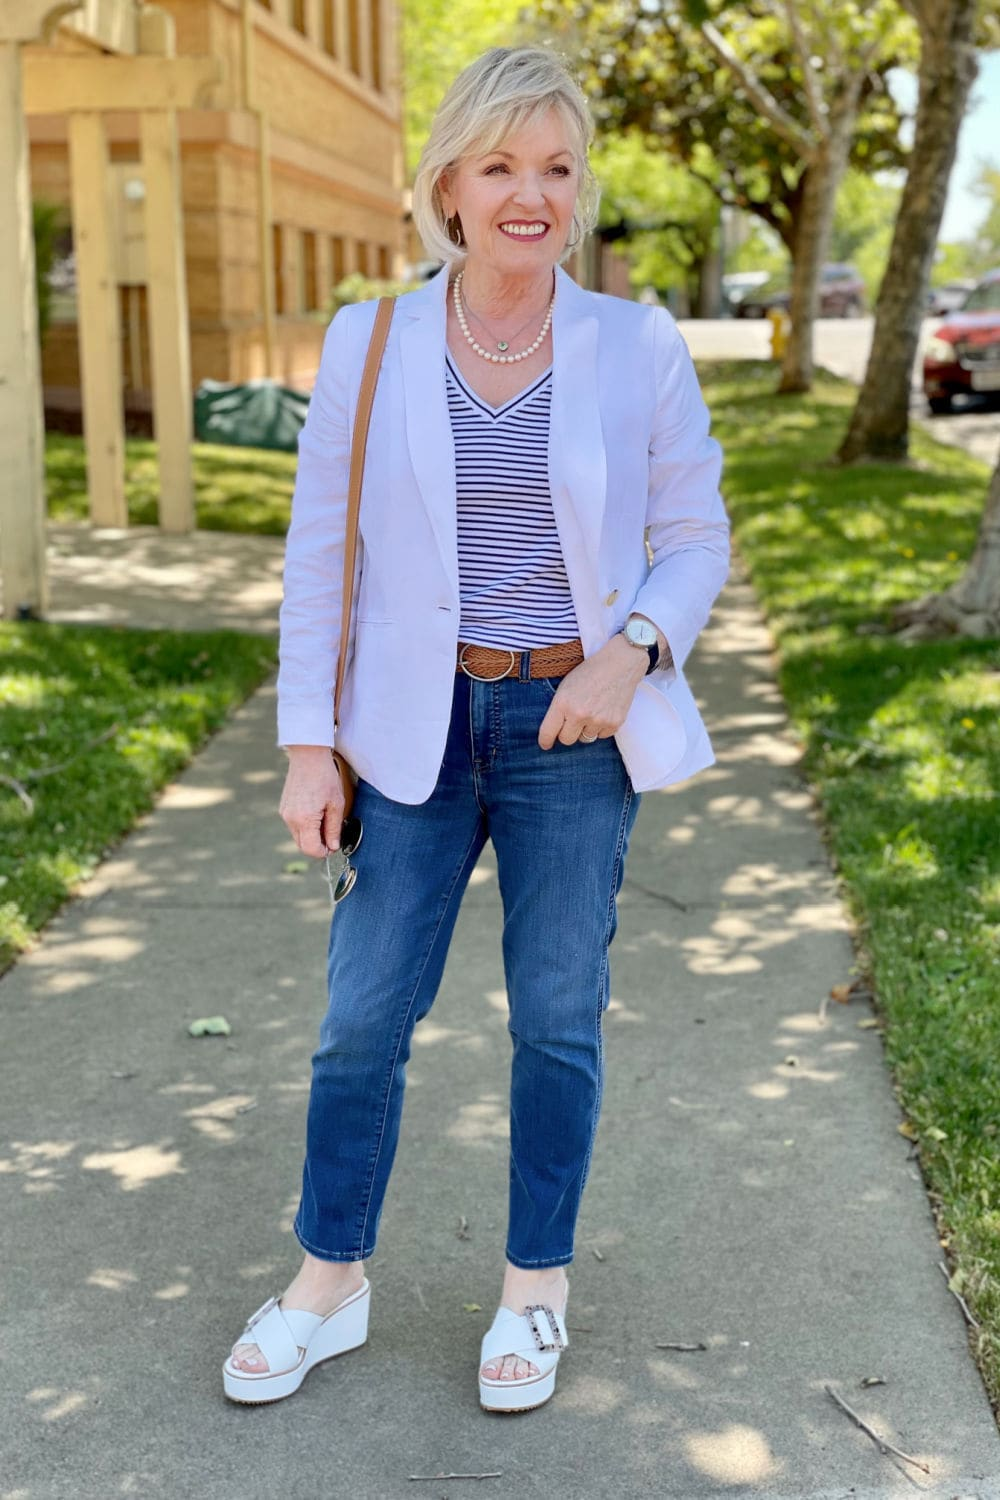 over 50 fashion blogger jennifer of a well styled life standing on sidewalk under tree wearing white linen blazer and blue jeans